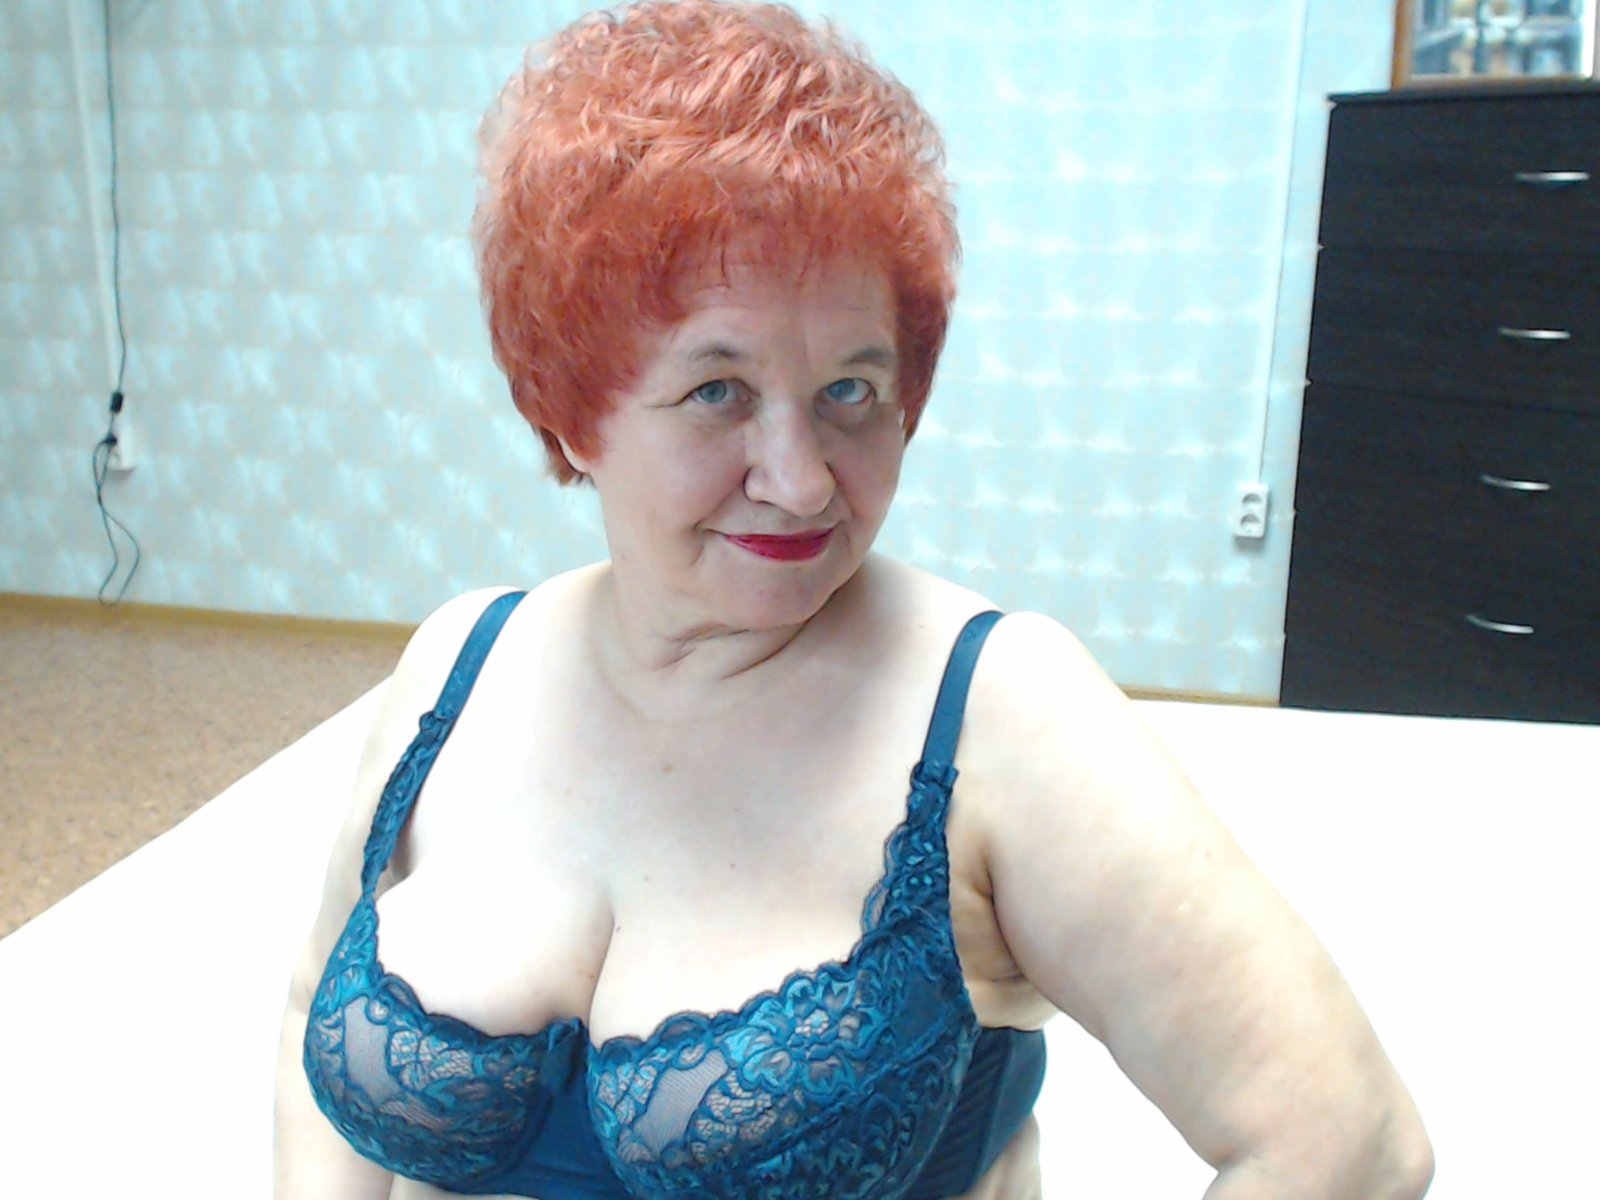 World's Hottest Grandma Gina Stewart Offers Free Access To Onlyfans To Raise Money For Bushfires